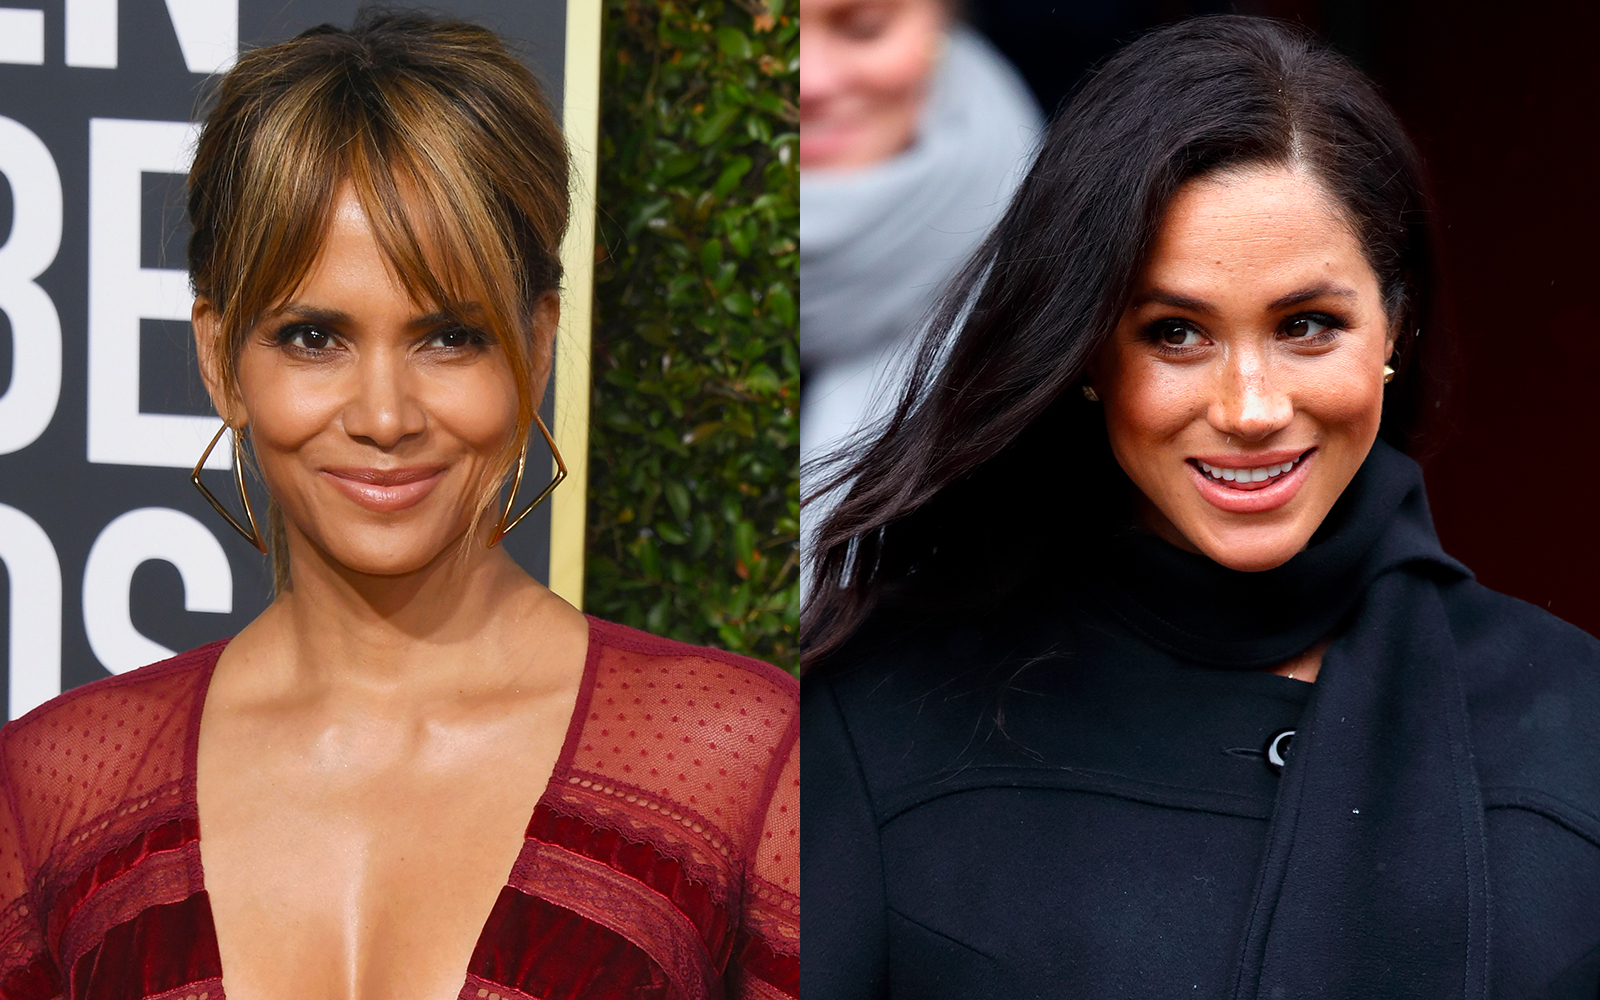 Where to Buy the Summer Sandals Halle Berry and Meghan Markle Both Love